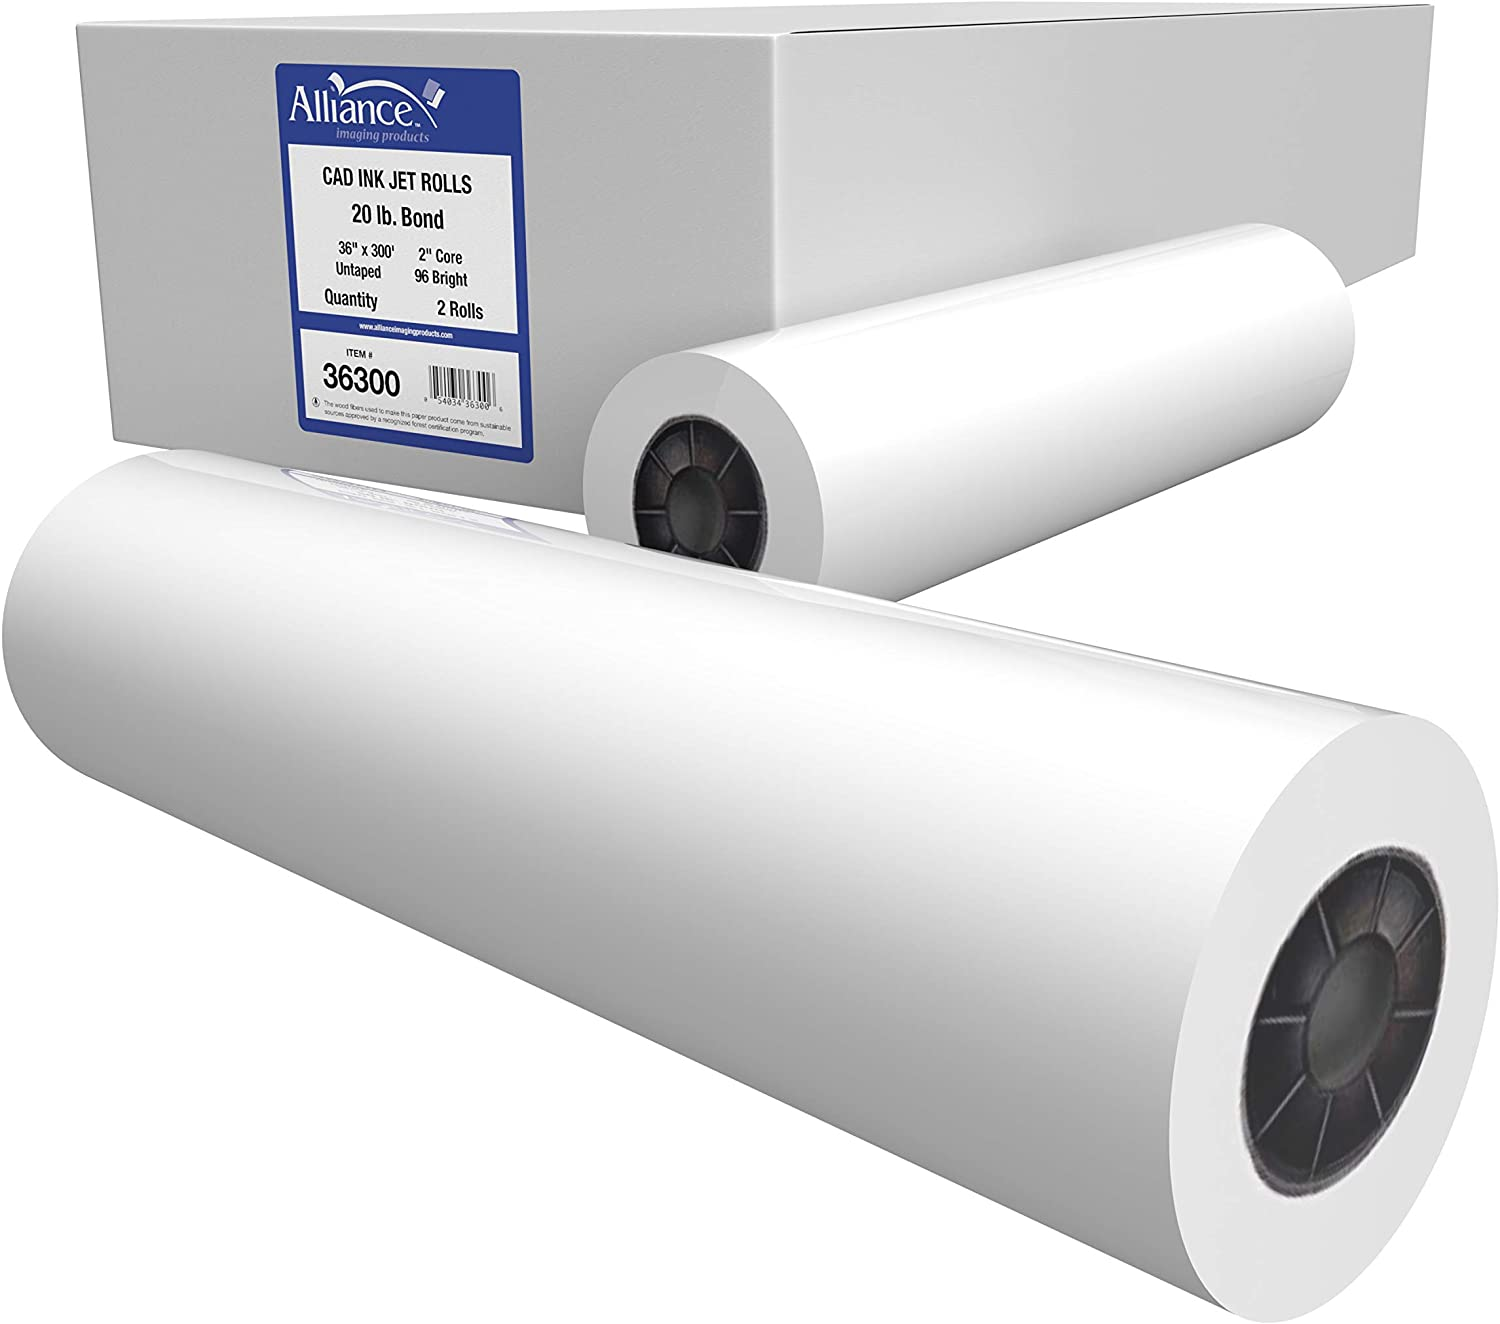 "Alliance CAD Paper Rolls, 36"" x 300"", 96 Bright, Ink Jet Bond… (2 Rolls, 2""core, 20 LB.)"